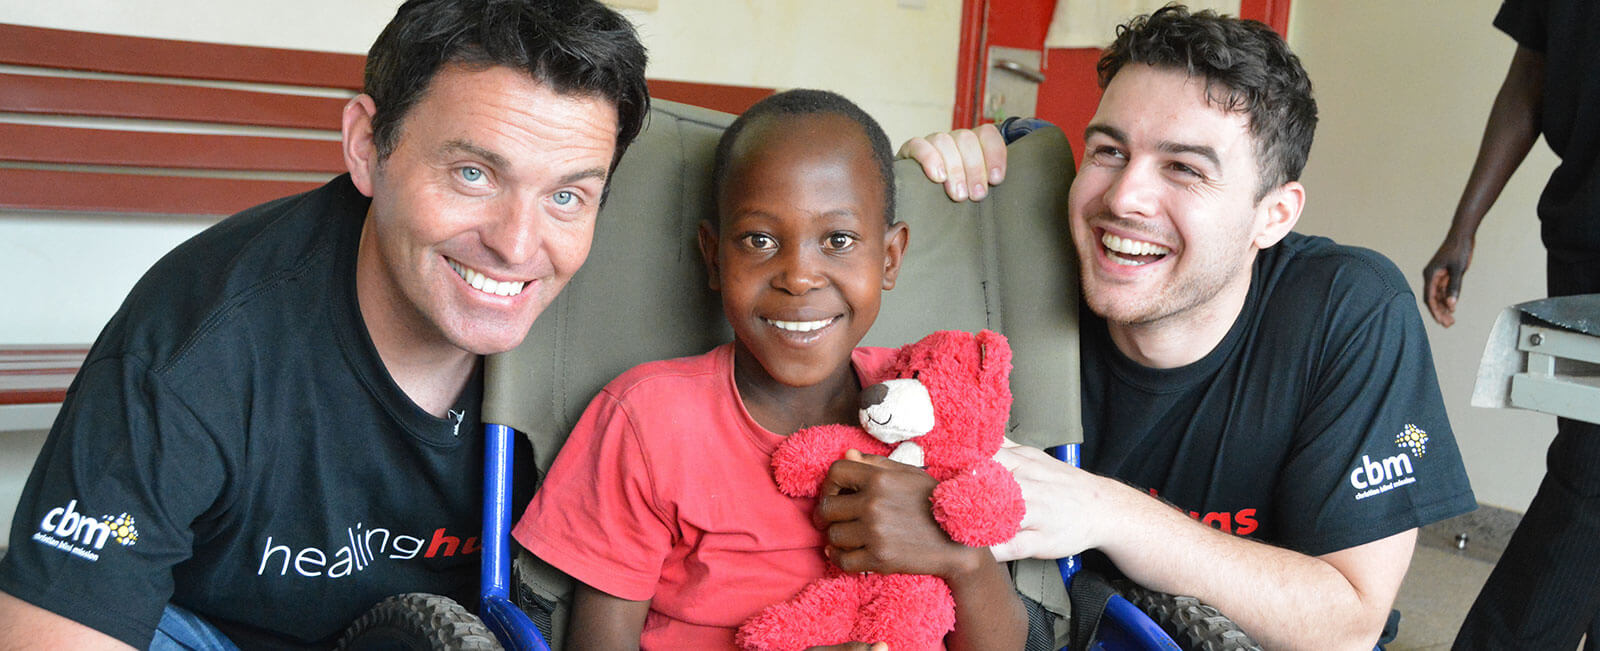 Celtic Thunder brings Irish love to Uganda